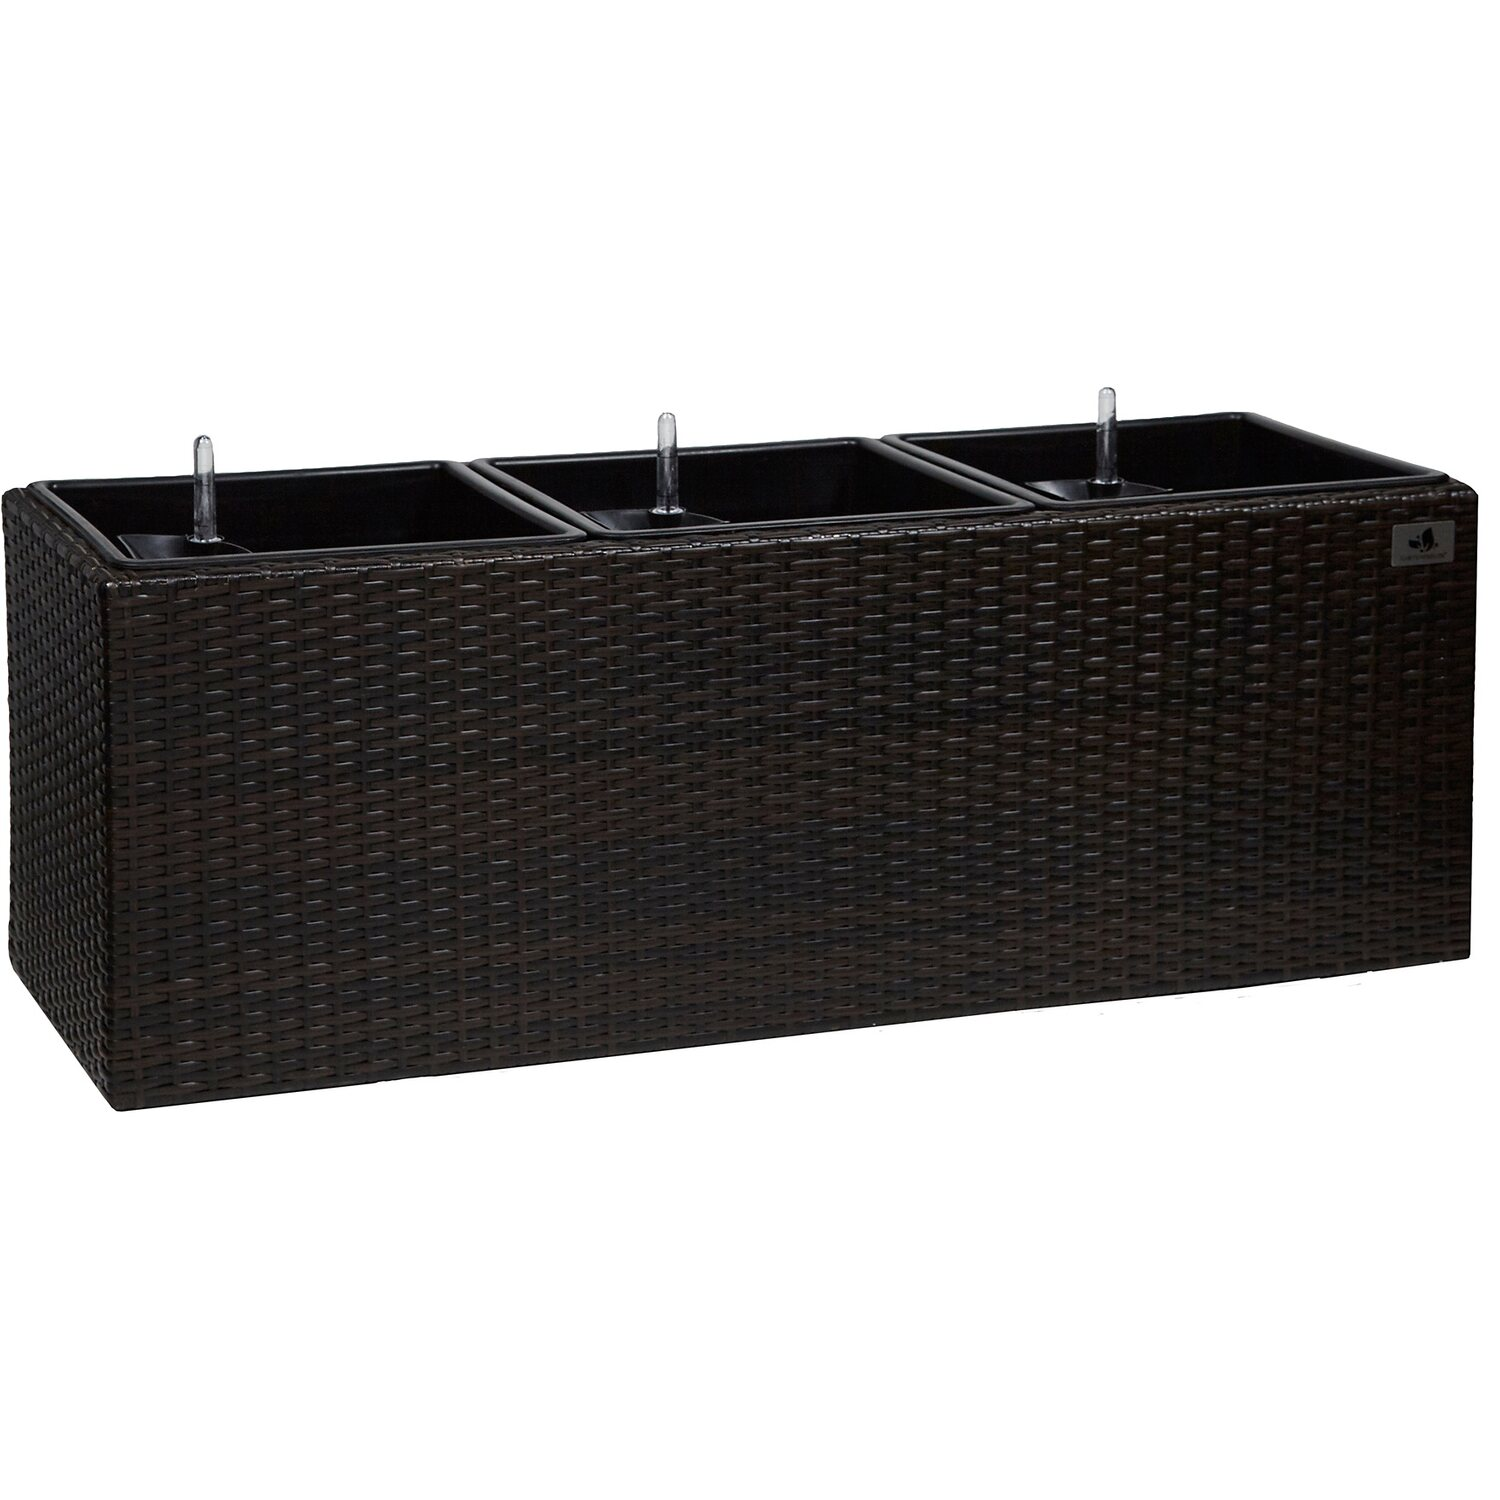 gartenfreude pflanzk bel polyrattan 102 cm x 36 cm. Black Bedroom Furniture Sets. Home Design Ideas